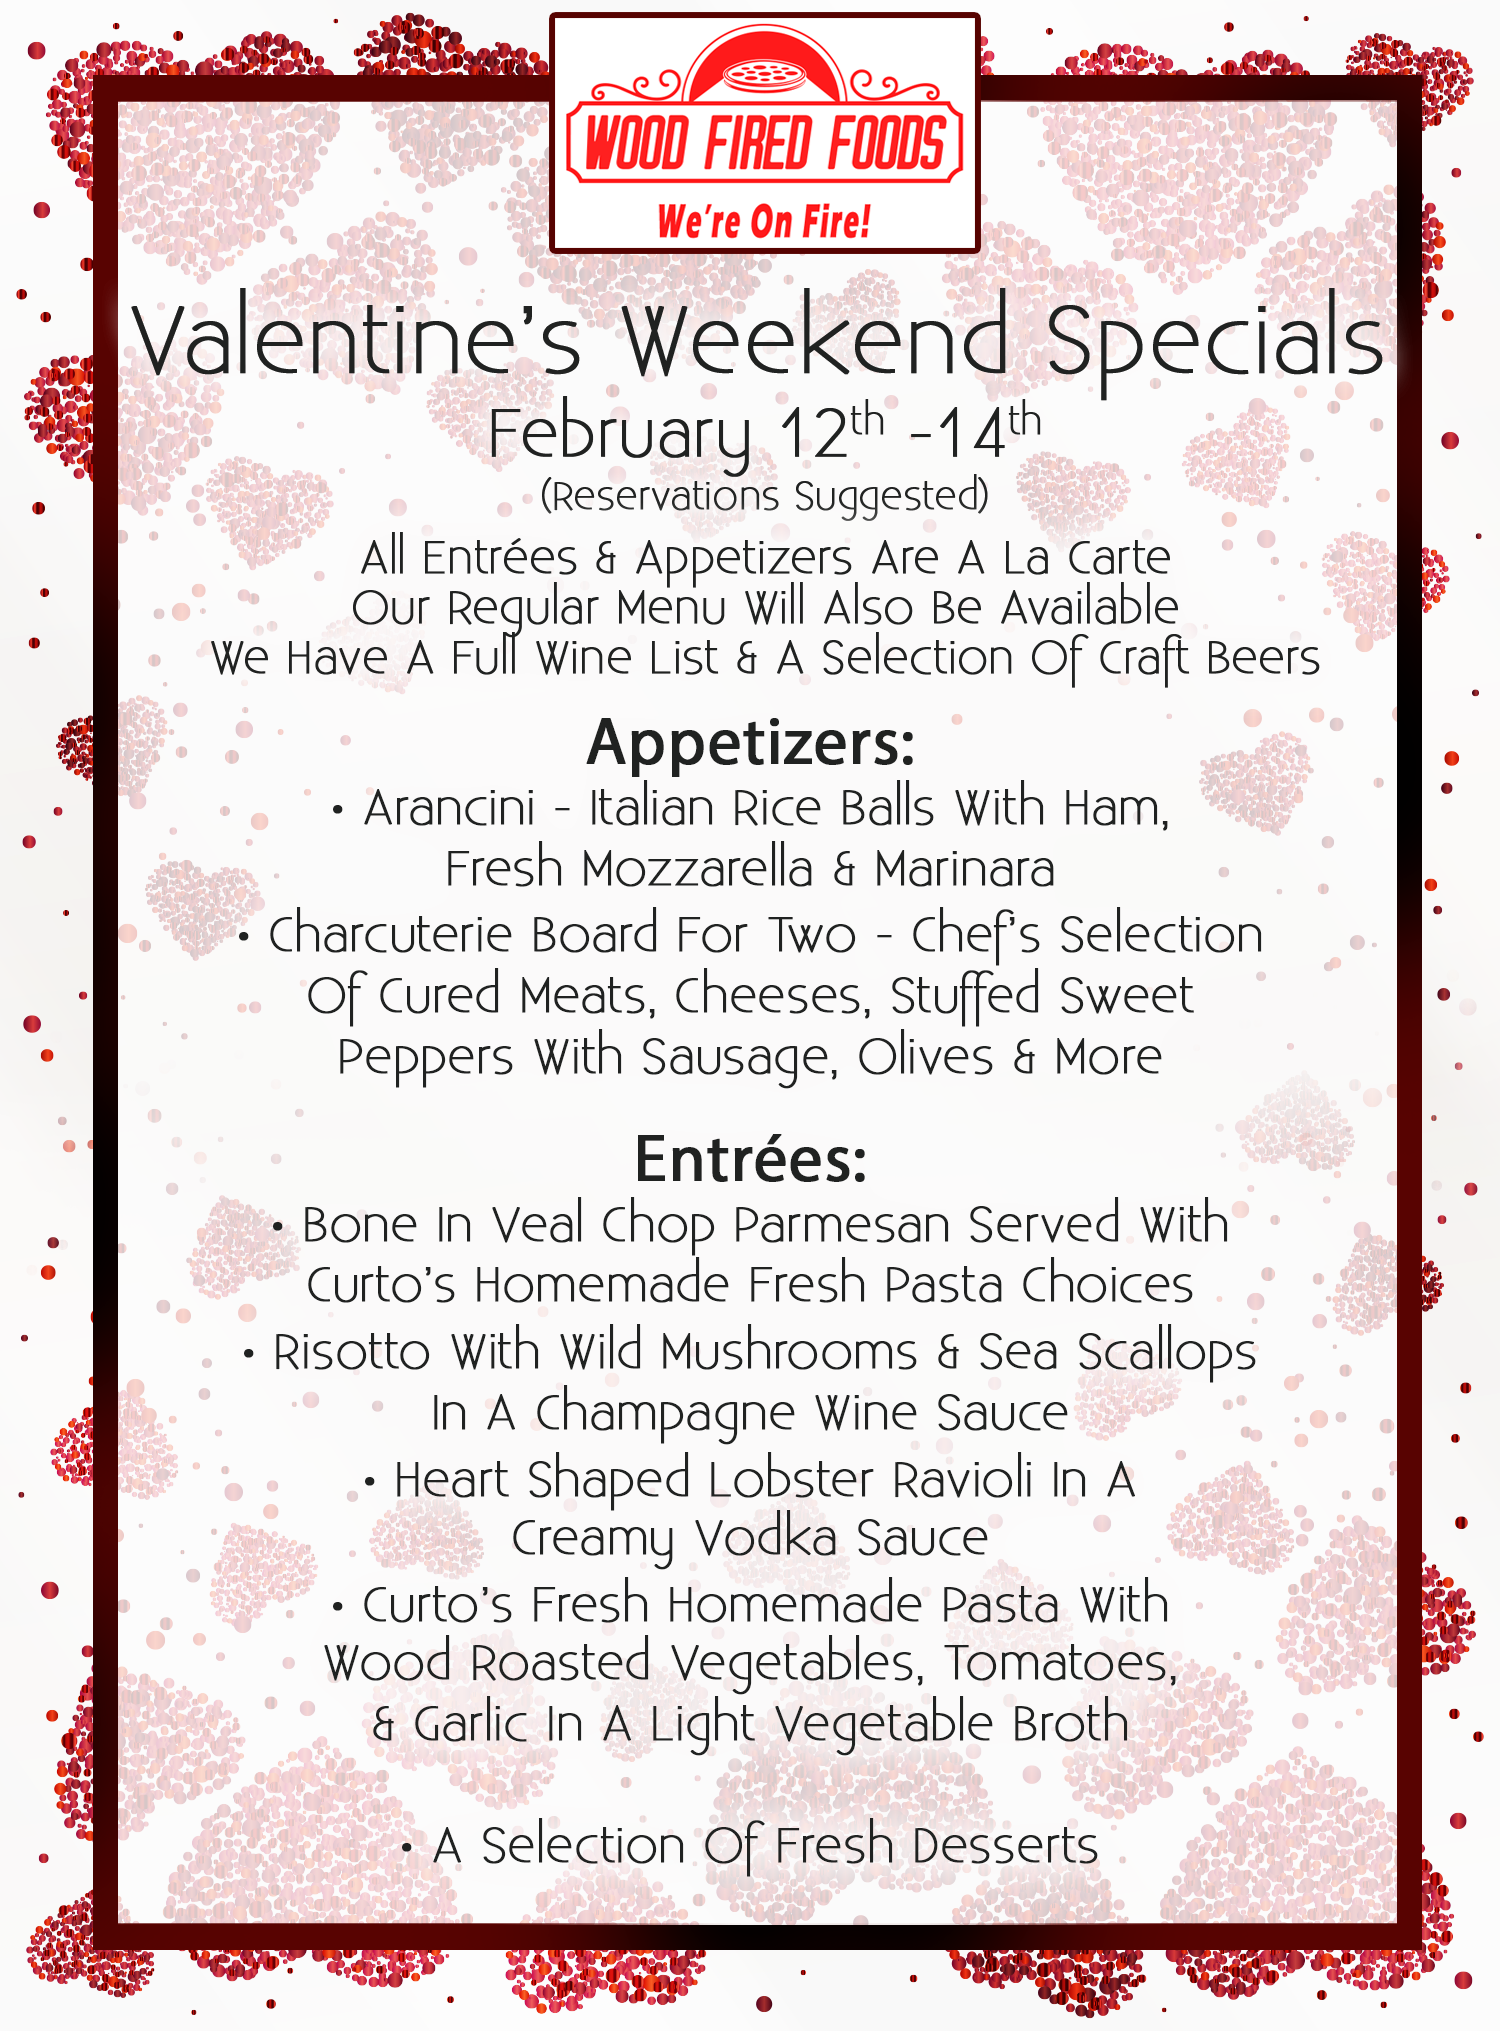 Valentine's Weekend Specials, February 12th-14th. (Reservations Suggested) All Entrées & Appetizers are a la carte. Our regular menu will also be available. We have a full wine list & a selection of craft beers. Appetizers: •Arancini - Italian Rice Balls with Ham, Fresh Mozzarella & Marinara. • Charcuterie Board for Two - Chef's Selection of Cured Meats, Cheeses, Stuffed Sweet Peppers with Sausage, Olives & More. Entrées: •Bone In Veal Choip Parmesan Served with Curto's Homemade Fresh Pasta Choices. •Risotto with Wild Mushrooms & Sea Scallops in a Champagne Wine Sauce. •Heart Shaped Lobster Ravioli in a Creamy Vodka Sauce. •Curto's Fresh Homemade Pasta with Wood Roasted Vegetables, Tomatoes, & Garlic in a Light Vegetable Broth. •A Selection of Fresh Desserts.